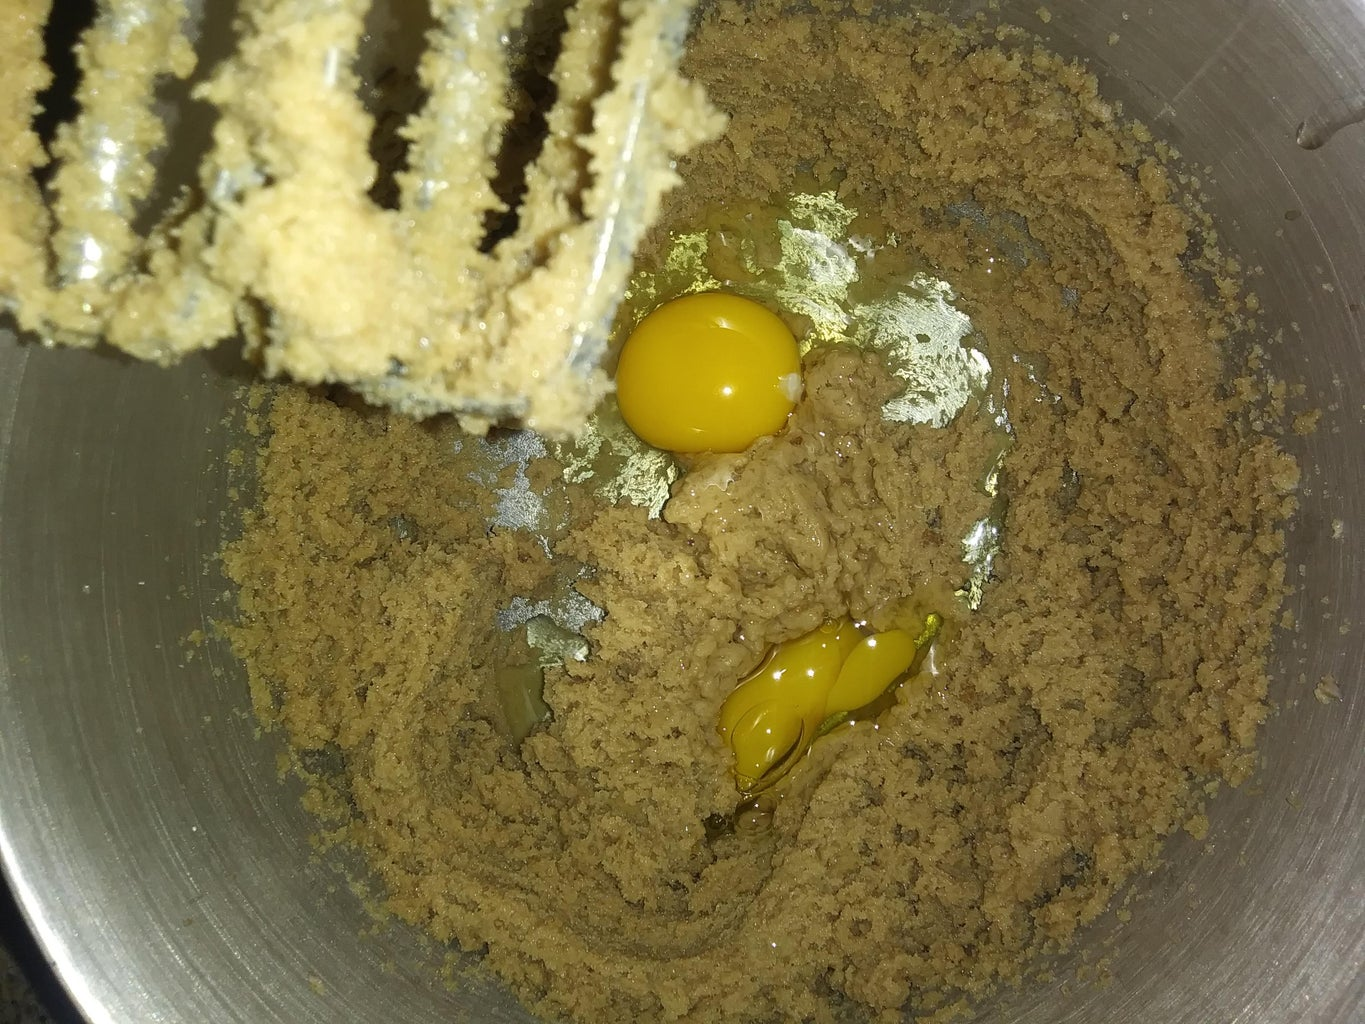 Making the Mixture Using the Wet Ingredients